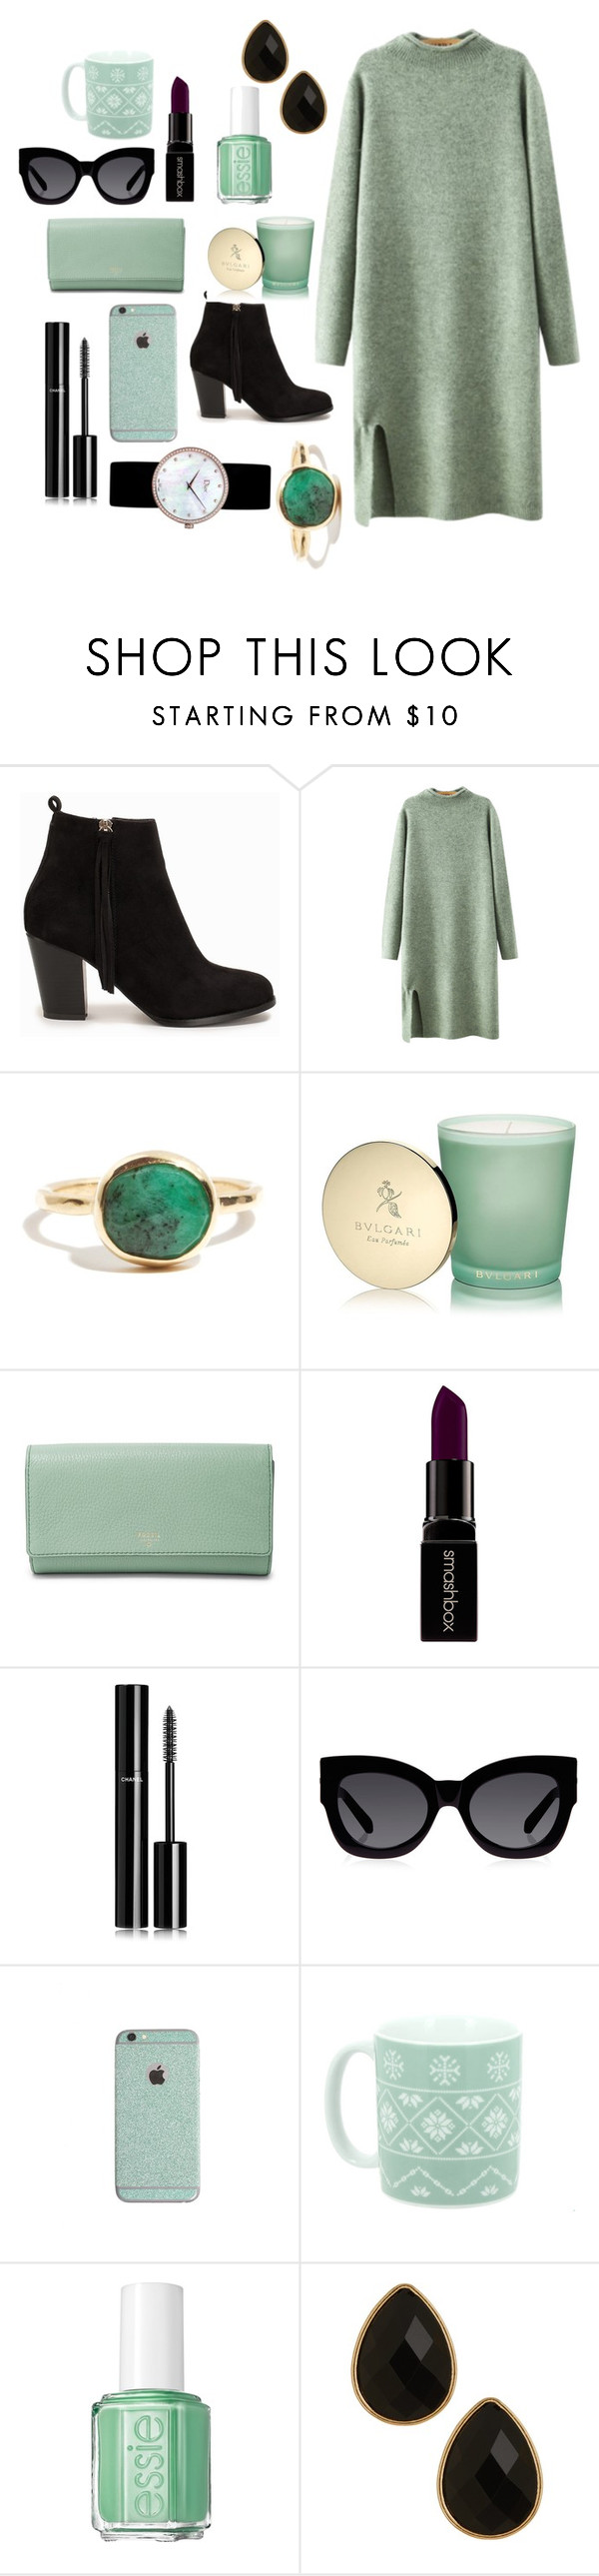 """Minimal"" by madi0401 ❤ liked on Polyvore featuring Nly Shoes, Chicnova Fashion, Bulgari, FOSSIL, Smashbox, Chanel, Karen Walker, Essie, Natasha Accessories and Christian Dior"